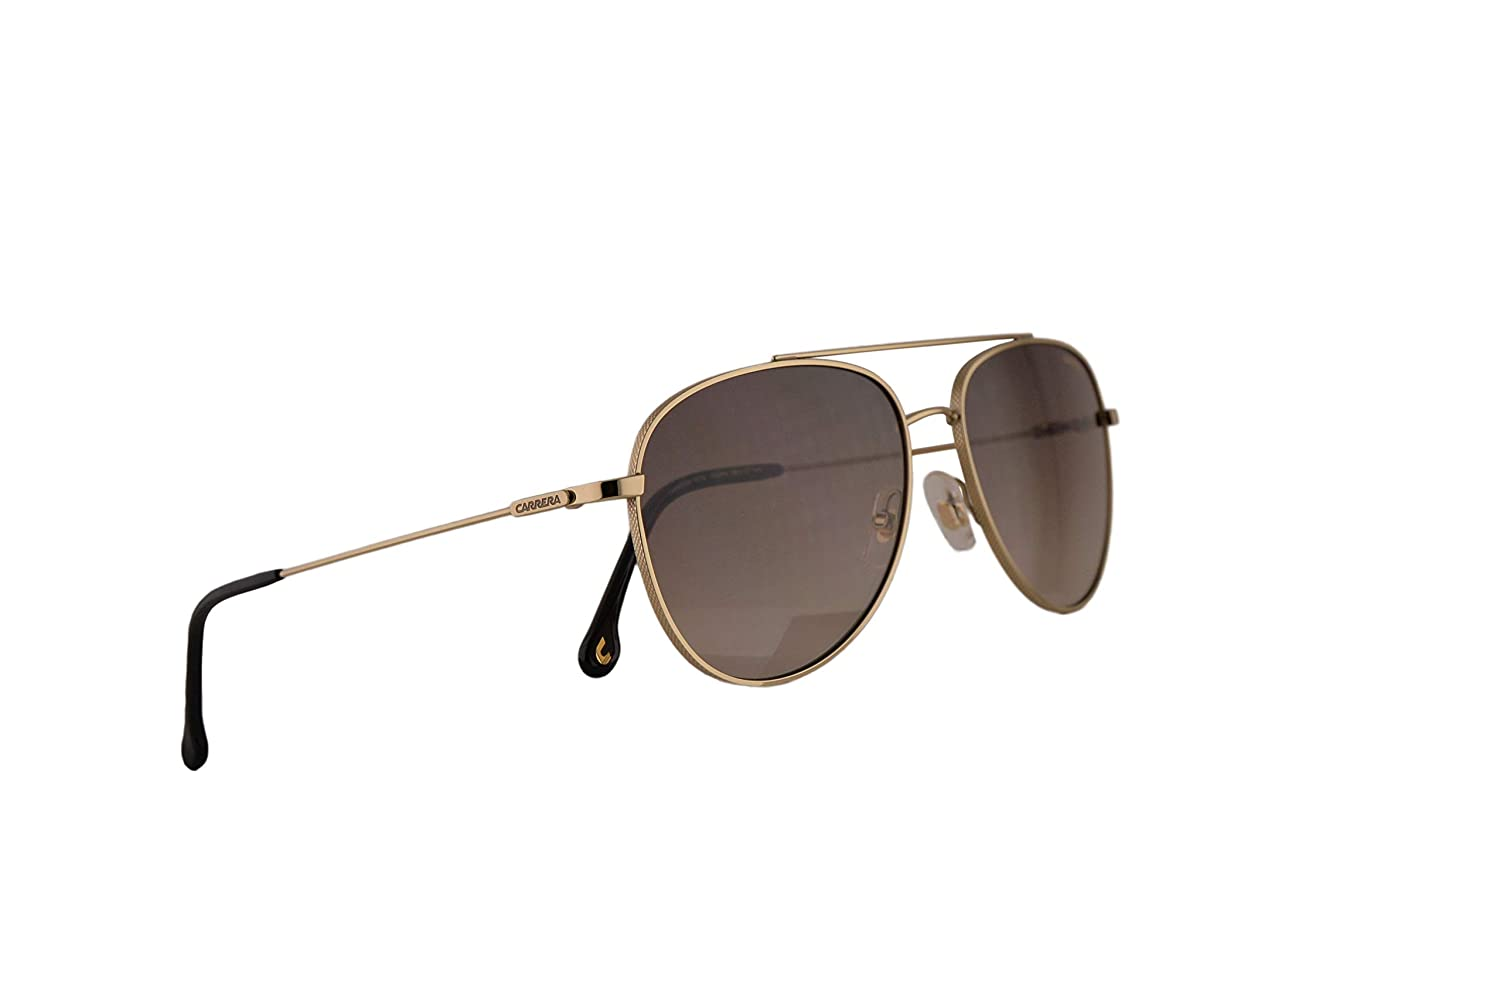 Amazon.com: Carrera 187/S - Gafas de sol, color dorado y ...